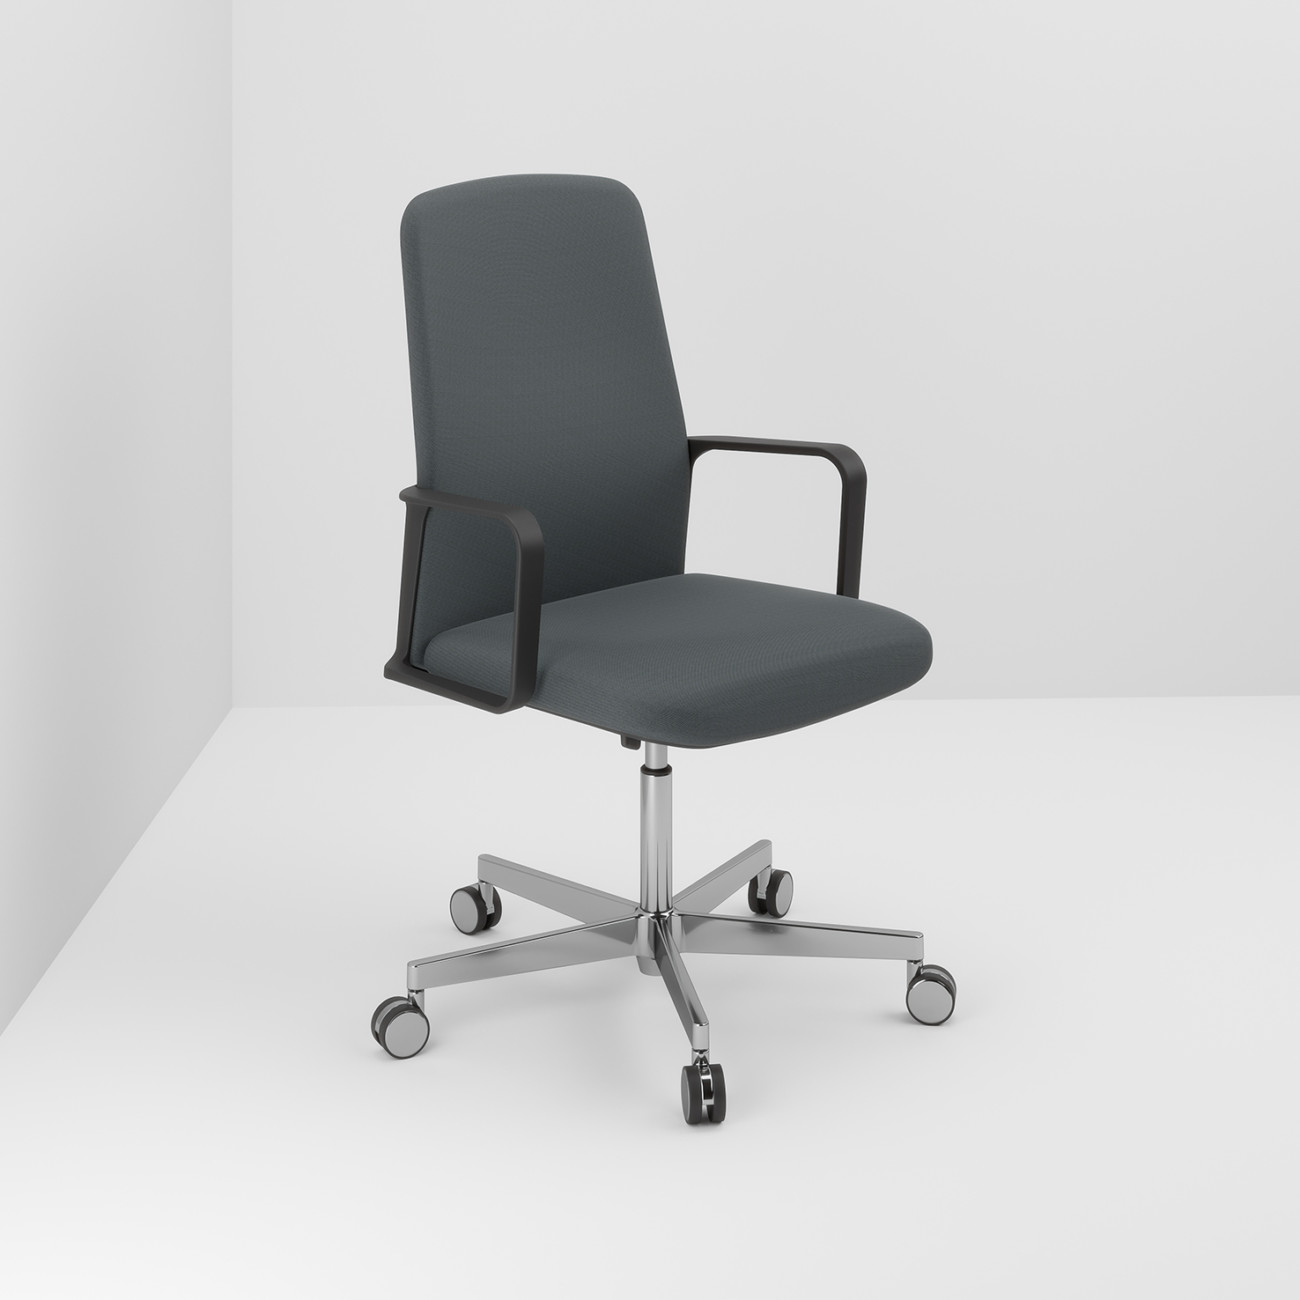 "Pedrali's ""Temps,"" designed by Jorge Pensi, is the first office swivel chair by the Italian manufacturer and makes a good impression with its unobtrusive and modern formal language."